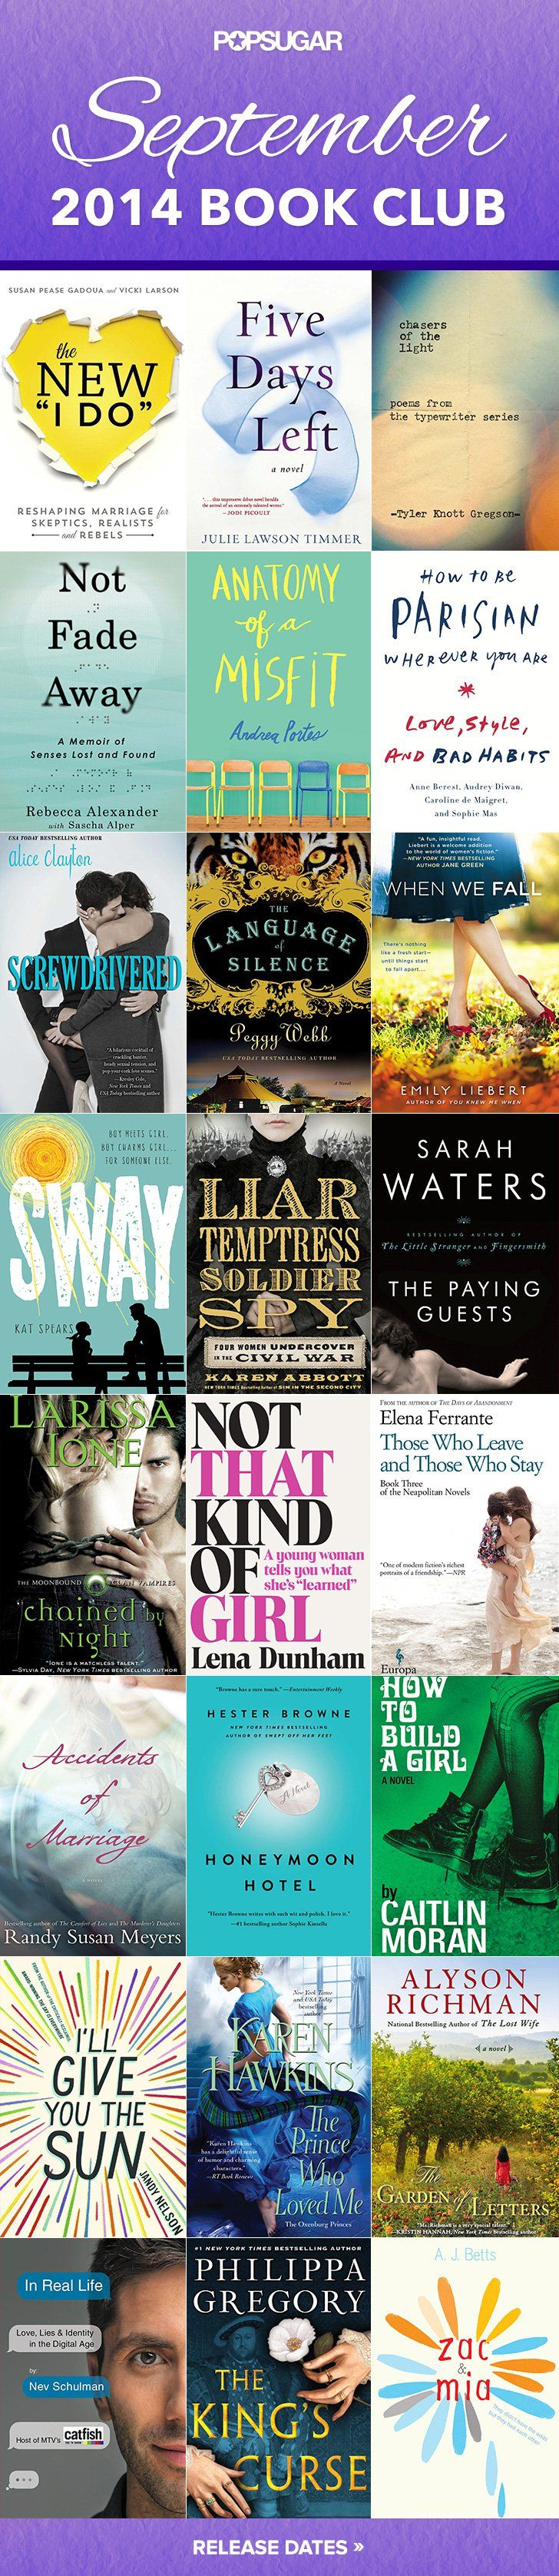 24 Of September's Sexiest New Books